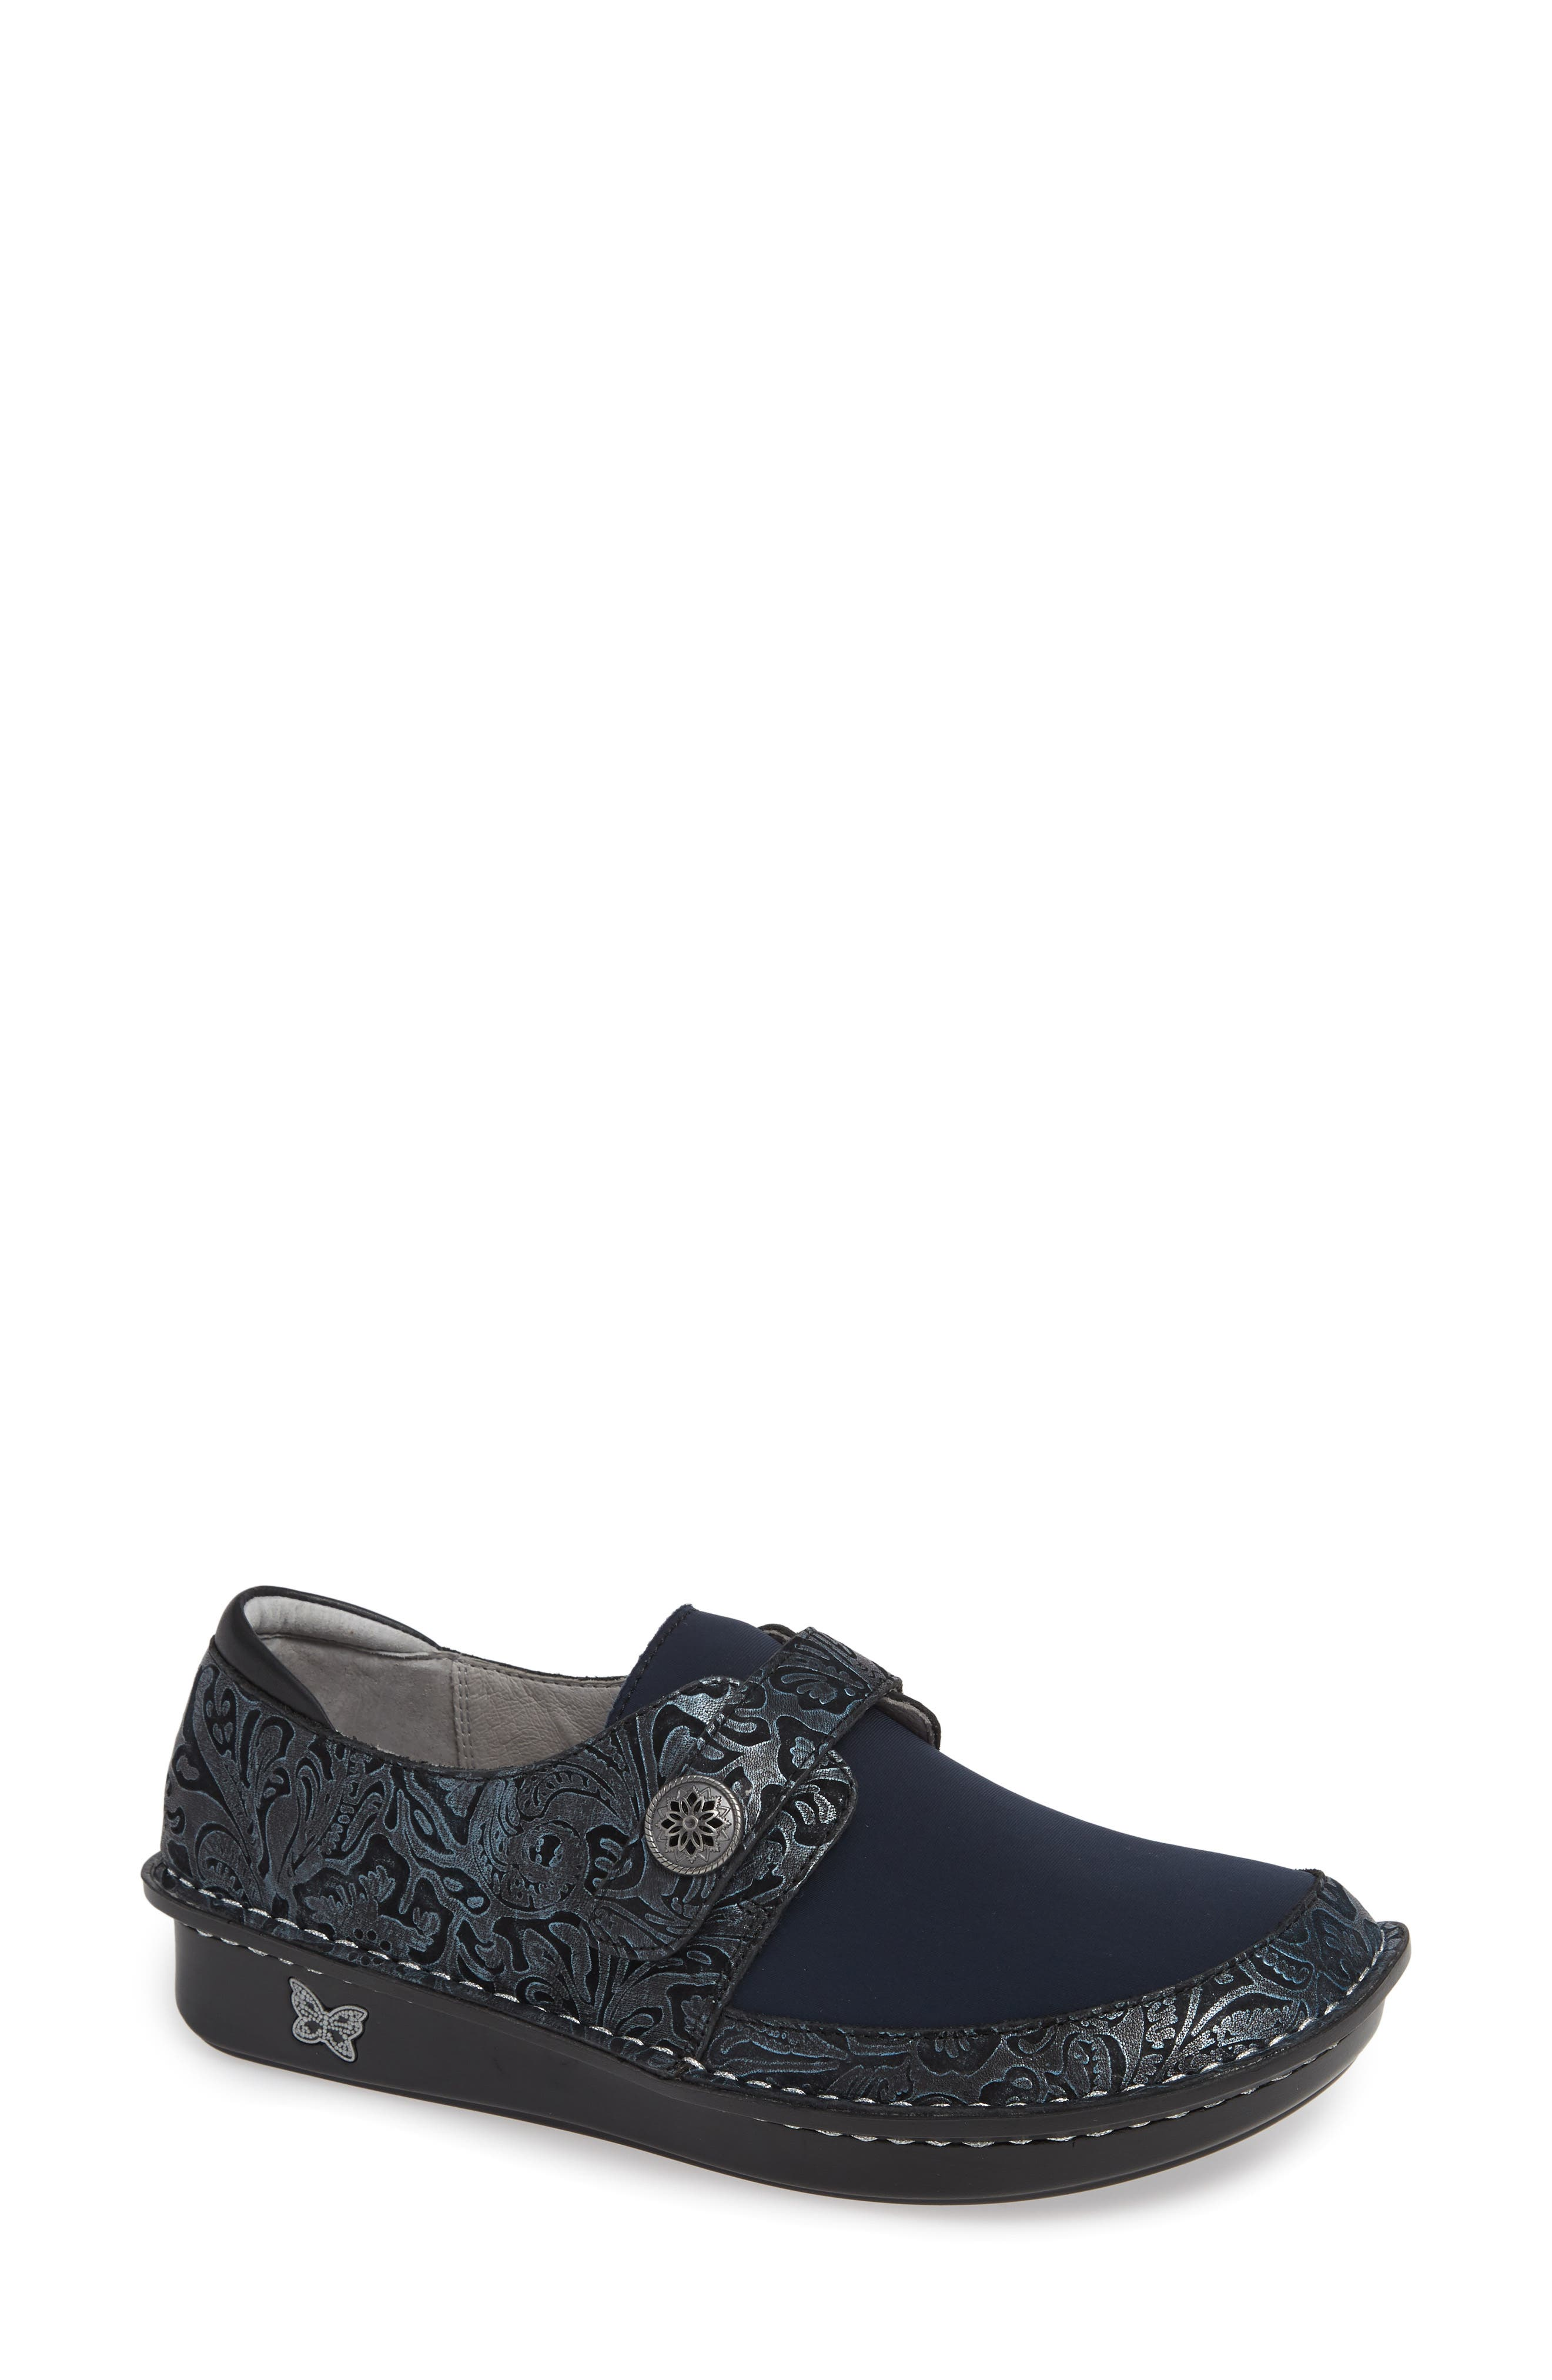 ALEGRIA Brenna Slip-On, Main, color, NAVY SWISH LEATHER